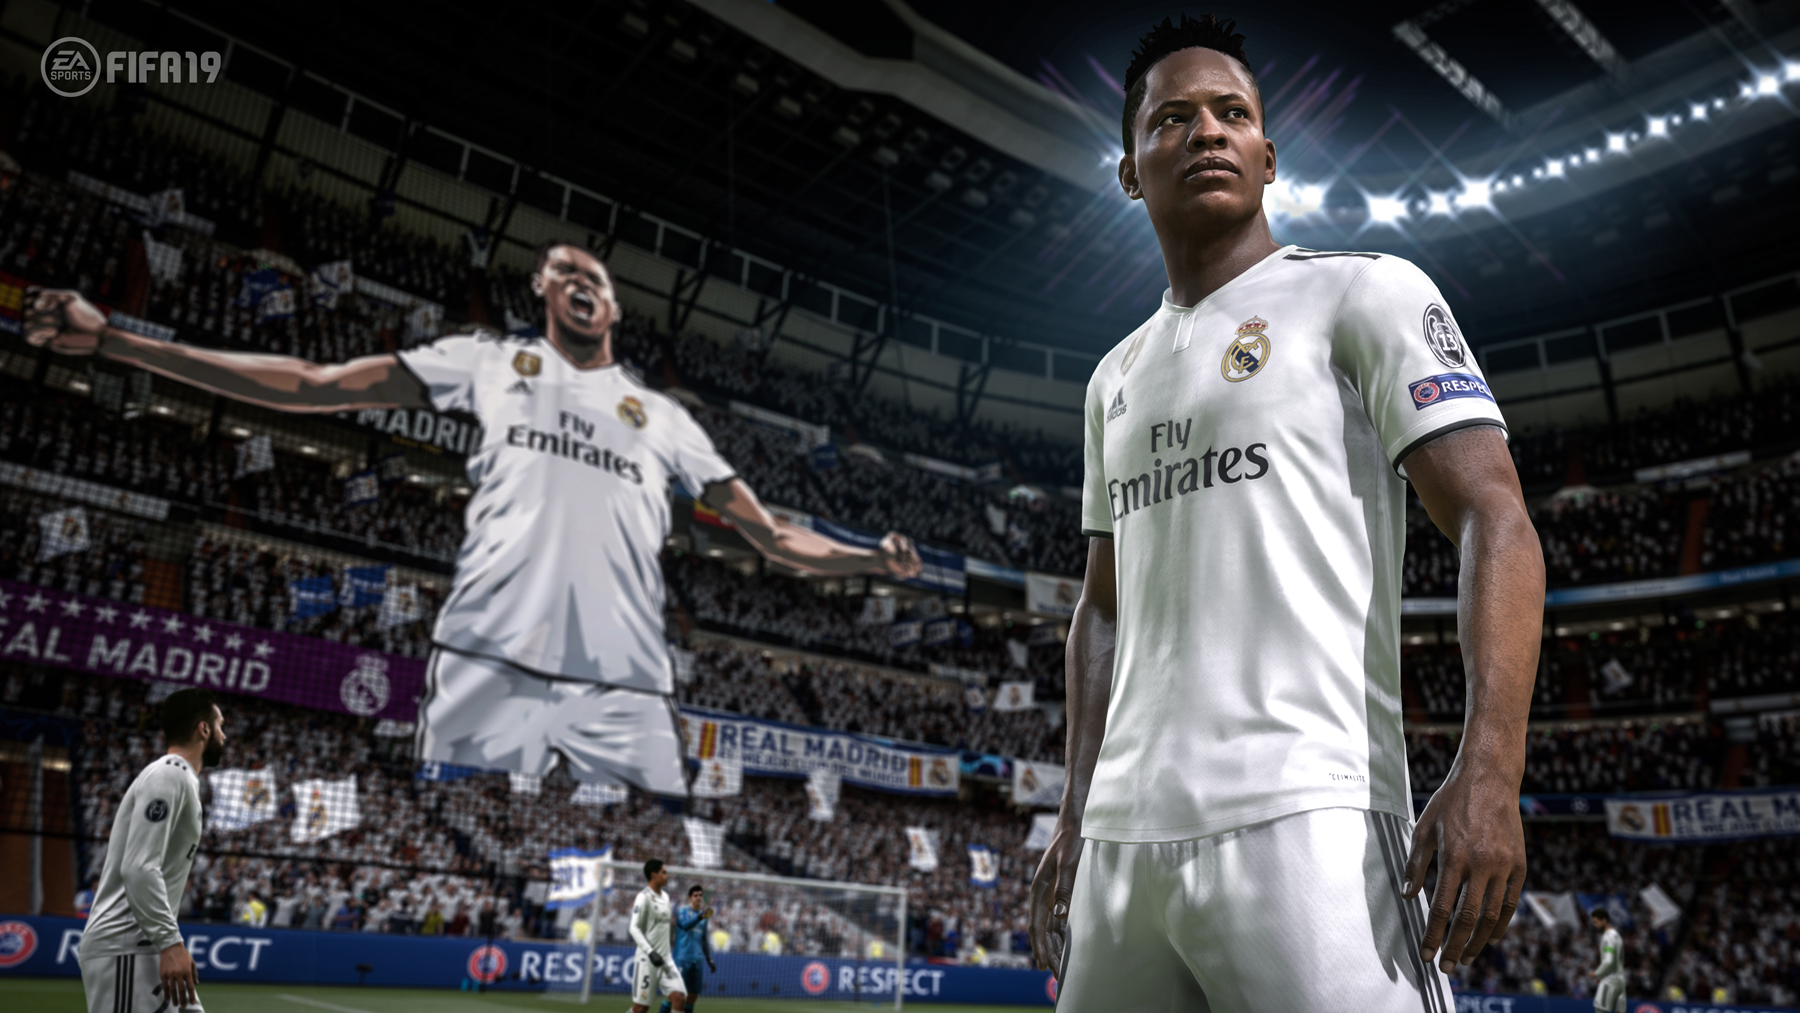 74700a9796c Fictional star Alex Hunter plays with Real Madrid in FIFA 19.